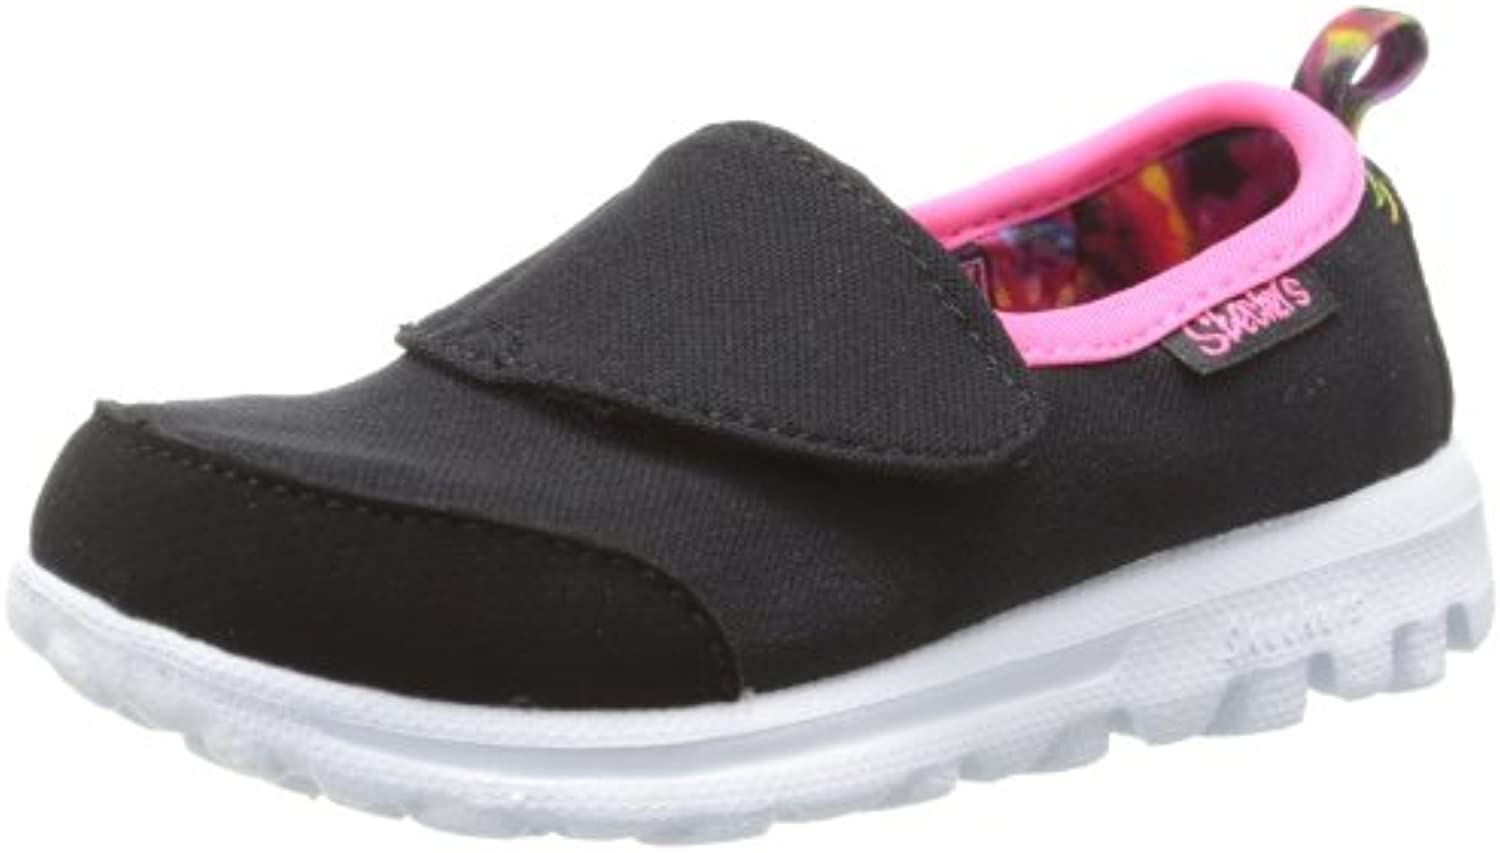 Skechers Kids 81020N Go Walk Athletic Sneaker Toddler/Little Kid